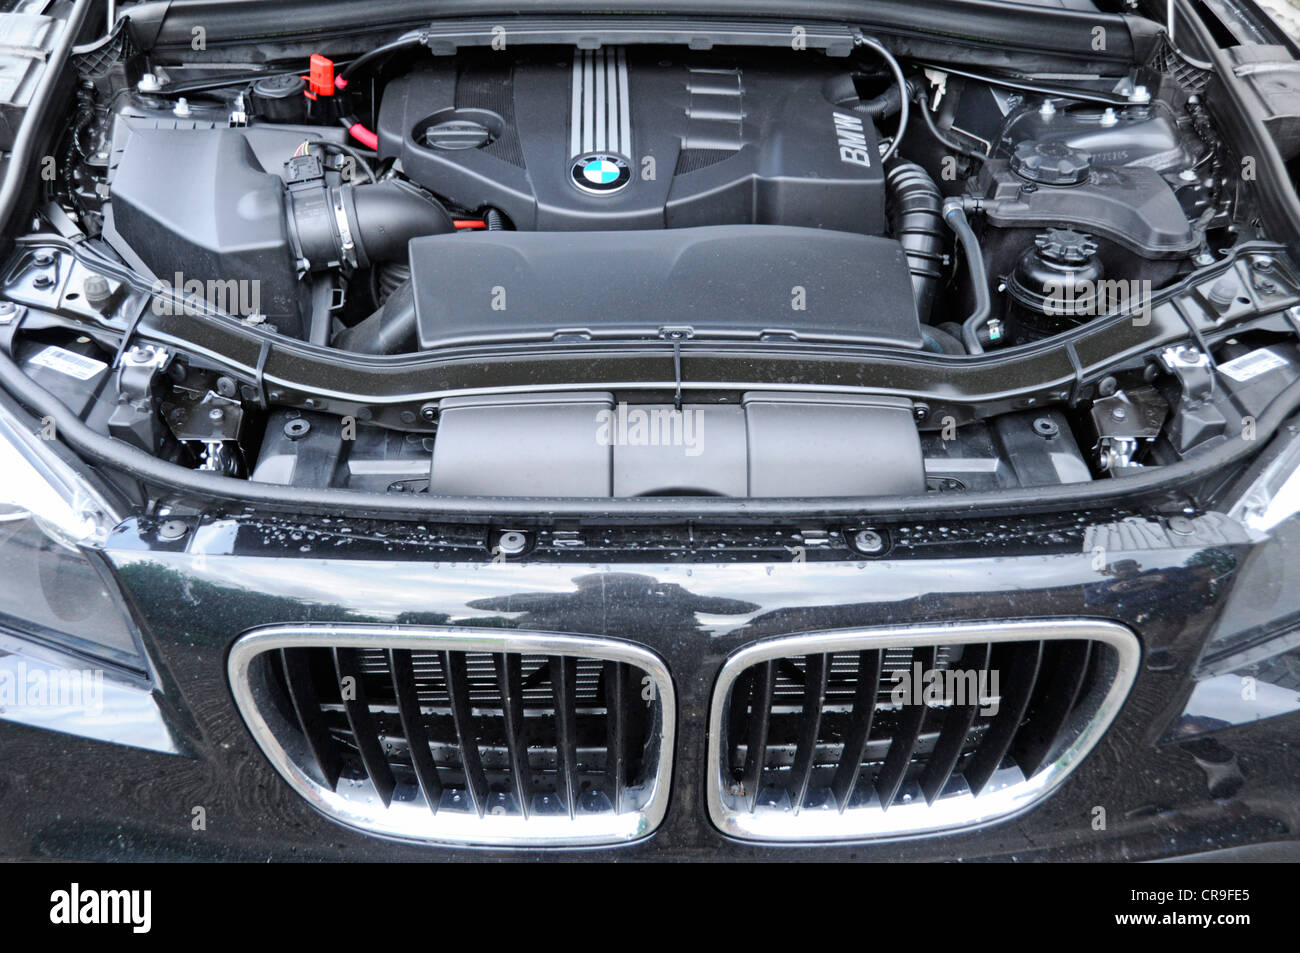 Engine Compartment Stockfotos & Engine Compartment Bilder - Alamy